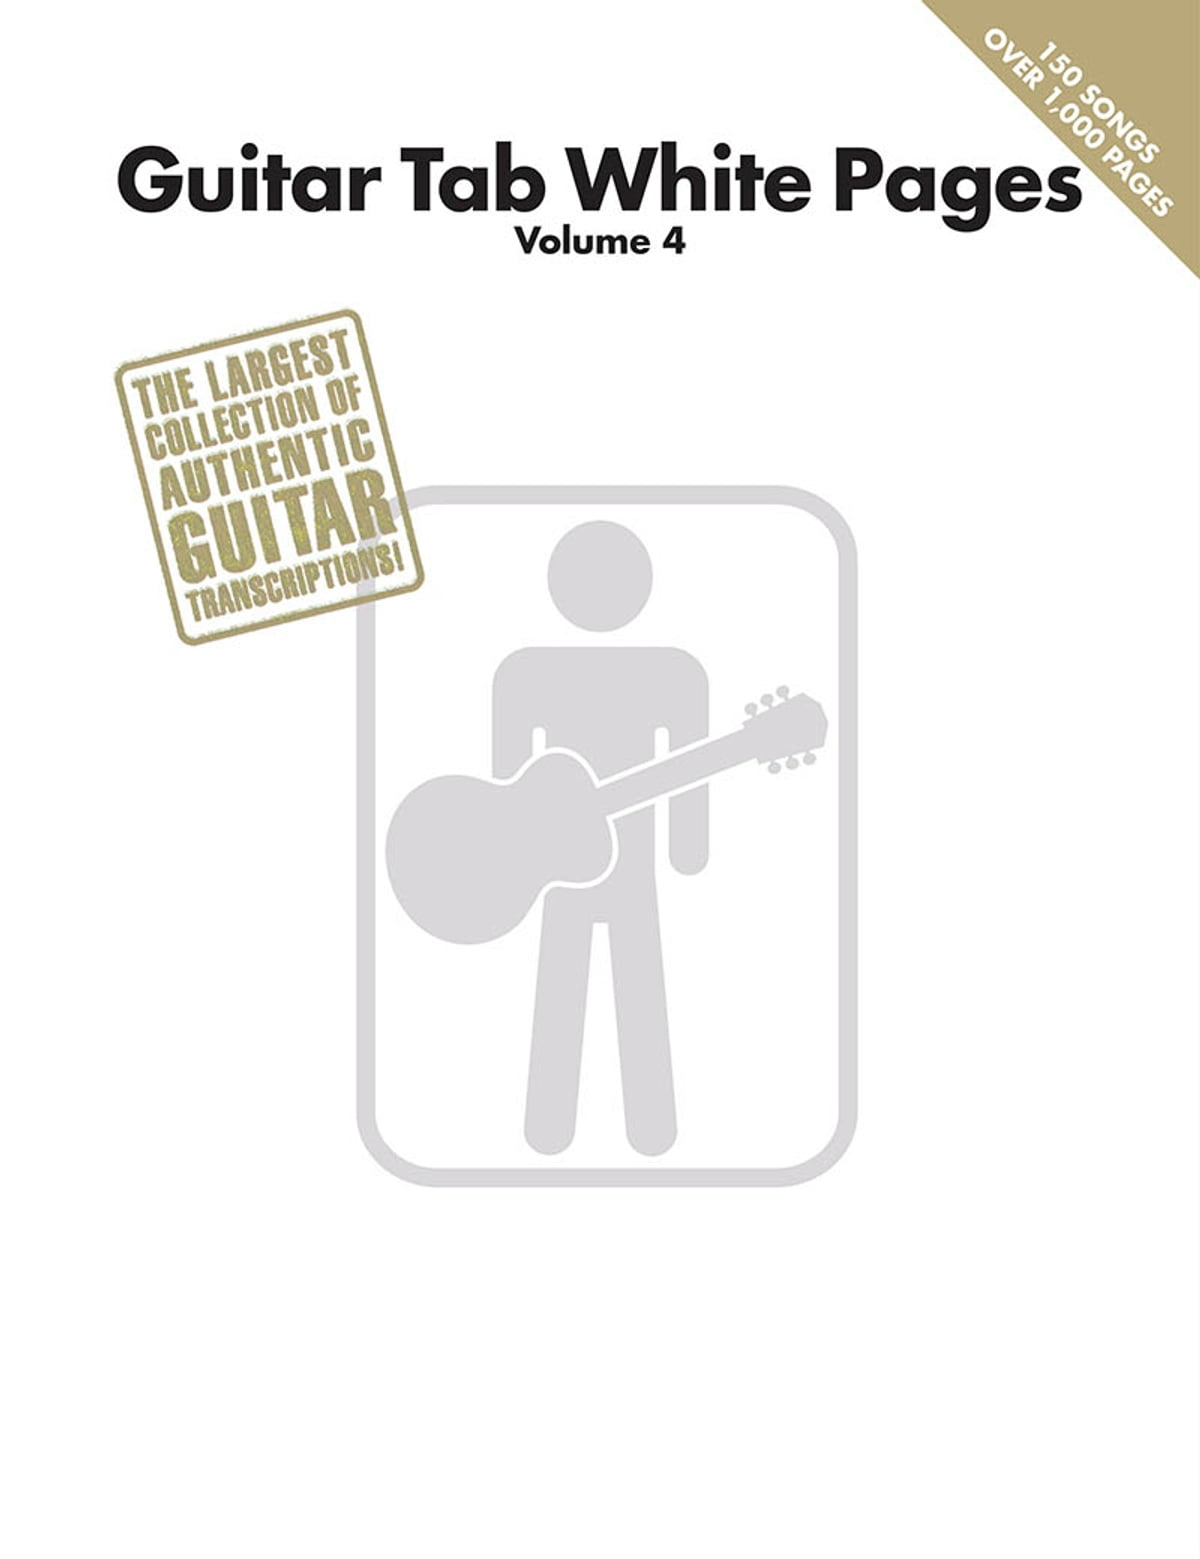 Guitar Tab White Pages Volume 4 Songbook Ebook By Hal Leonard